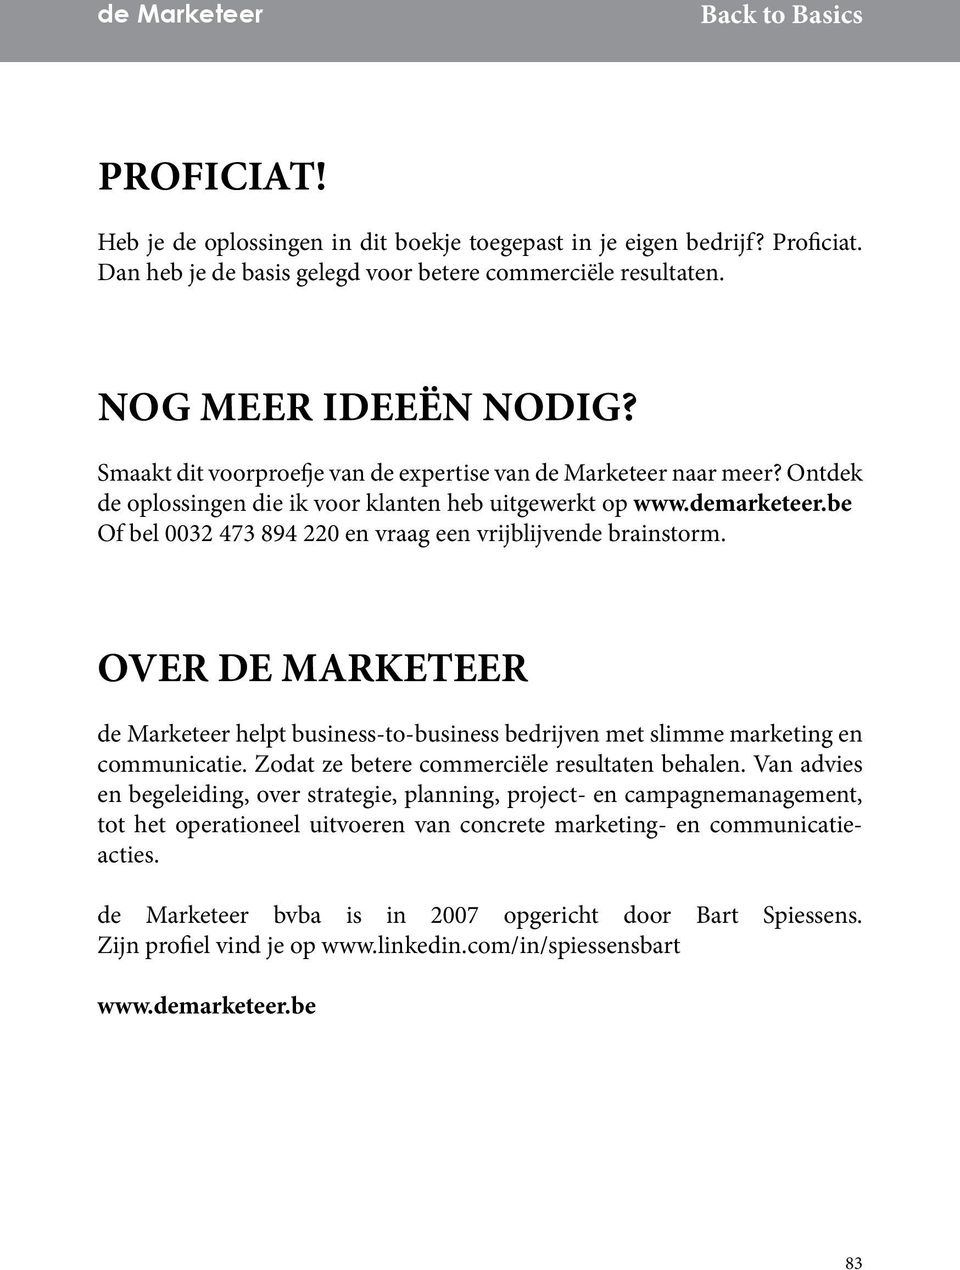 be Of bel 0032 473 894 220 en vraag een vrijblijvende brainstorm. OVER DE MARKETEER de Marketeer helpt business-to-business bedrijven met slimme marketing en communicatie.